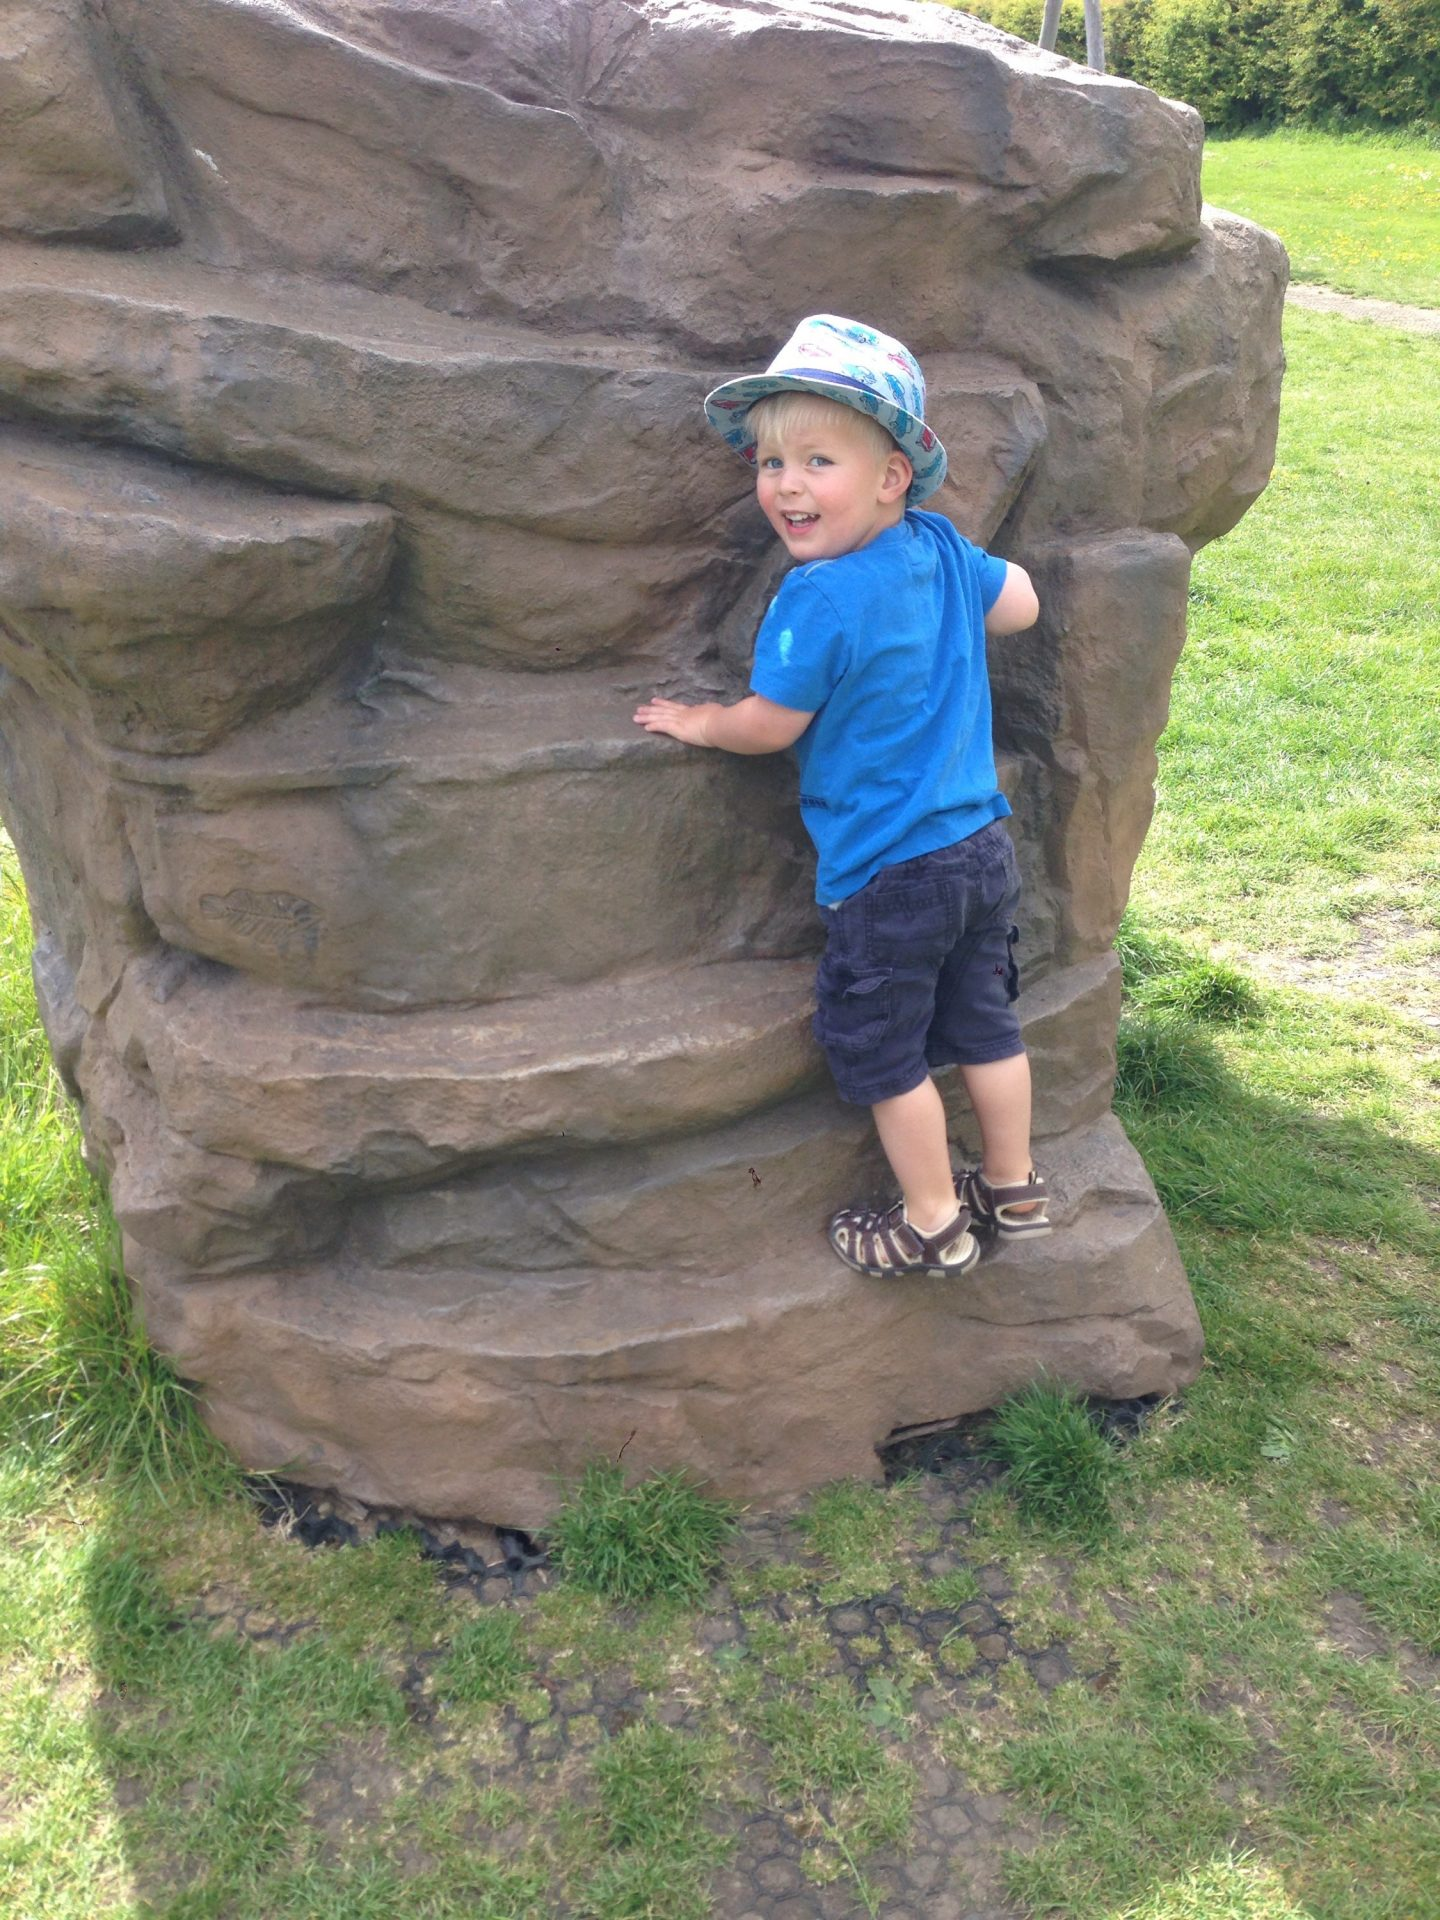 Playgrounds in North Tyneside – Earsdon Playsite